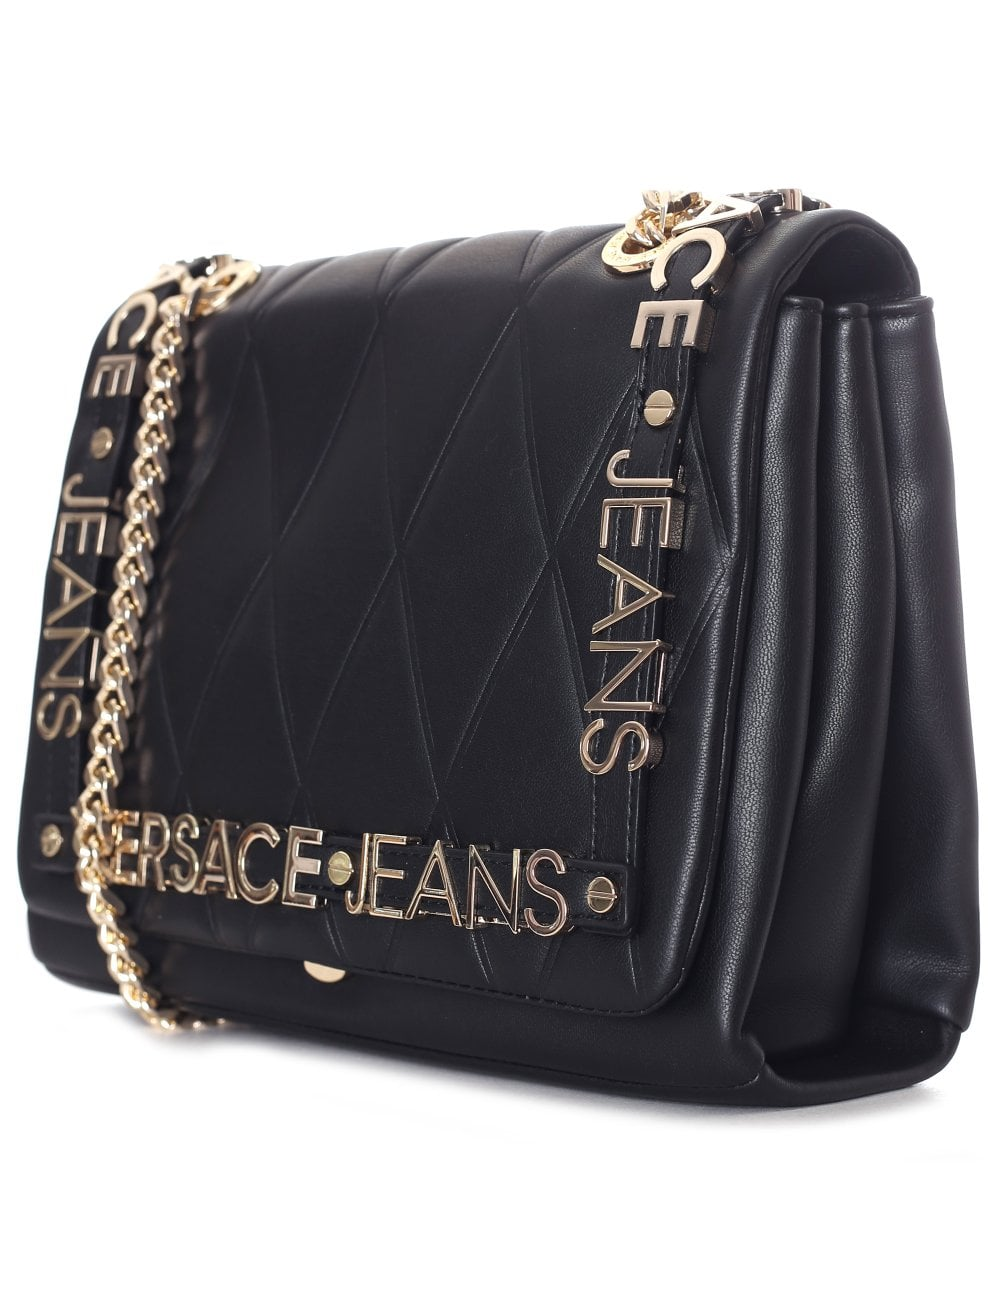 fd3131918976 Versace Jeans Women s Quilted Chain Shoulder bag